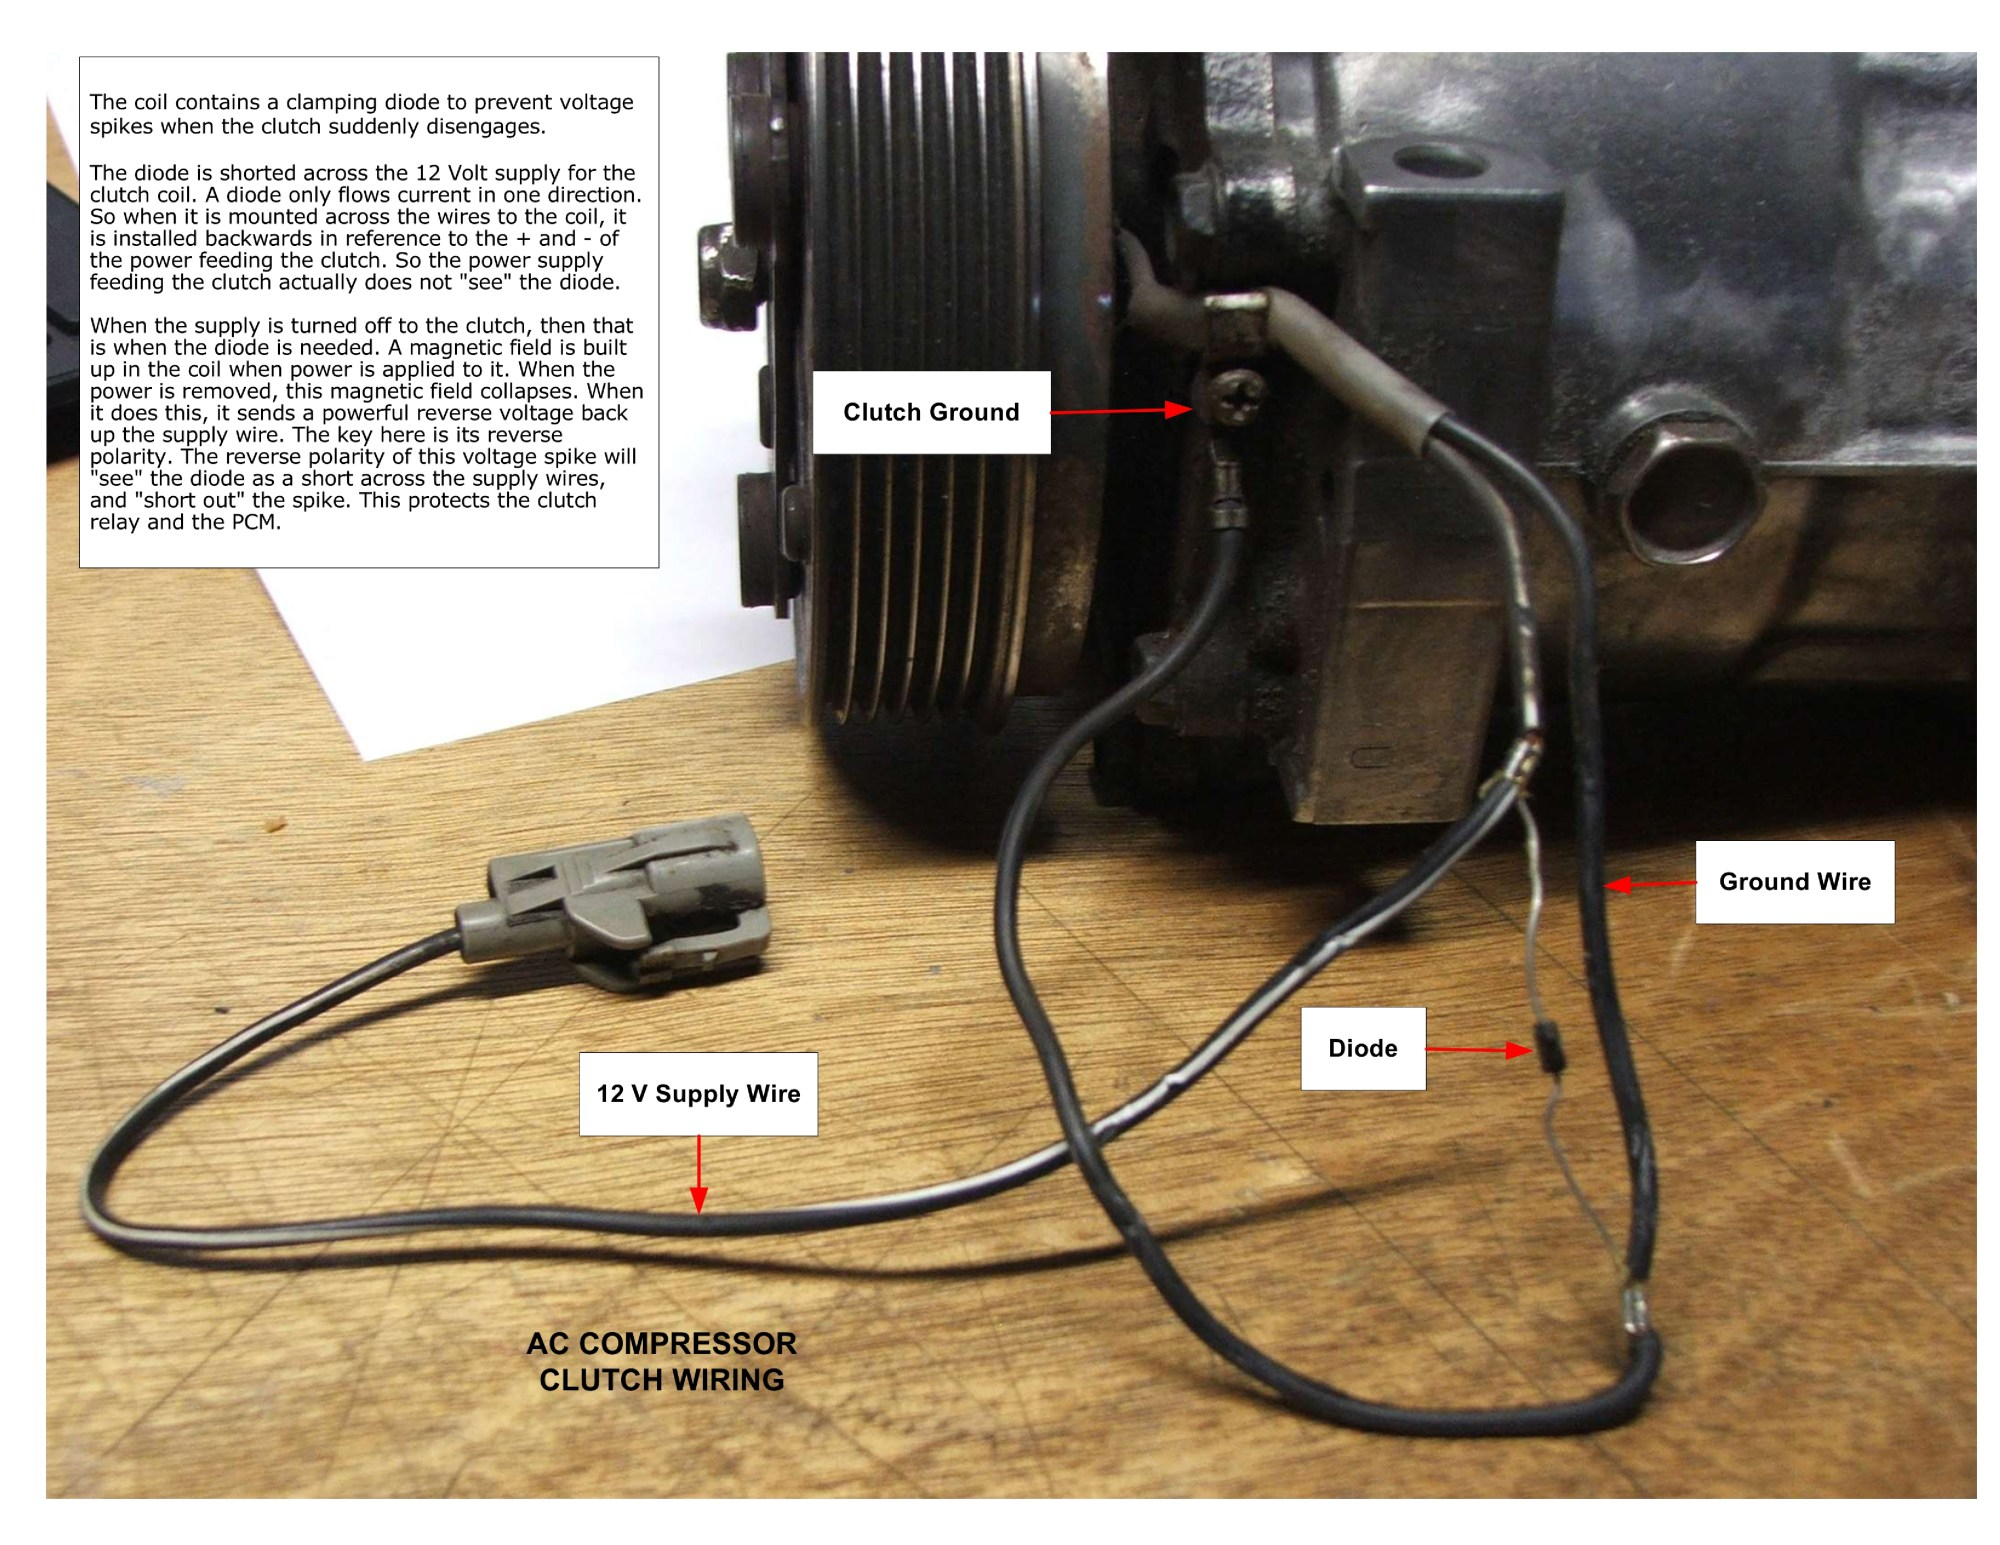 hight resolution of wire for power going to the compressor clutch when the a c is turned ford a c clutch coil wiring